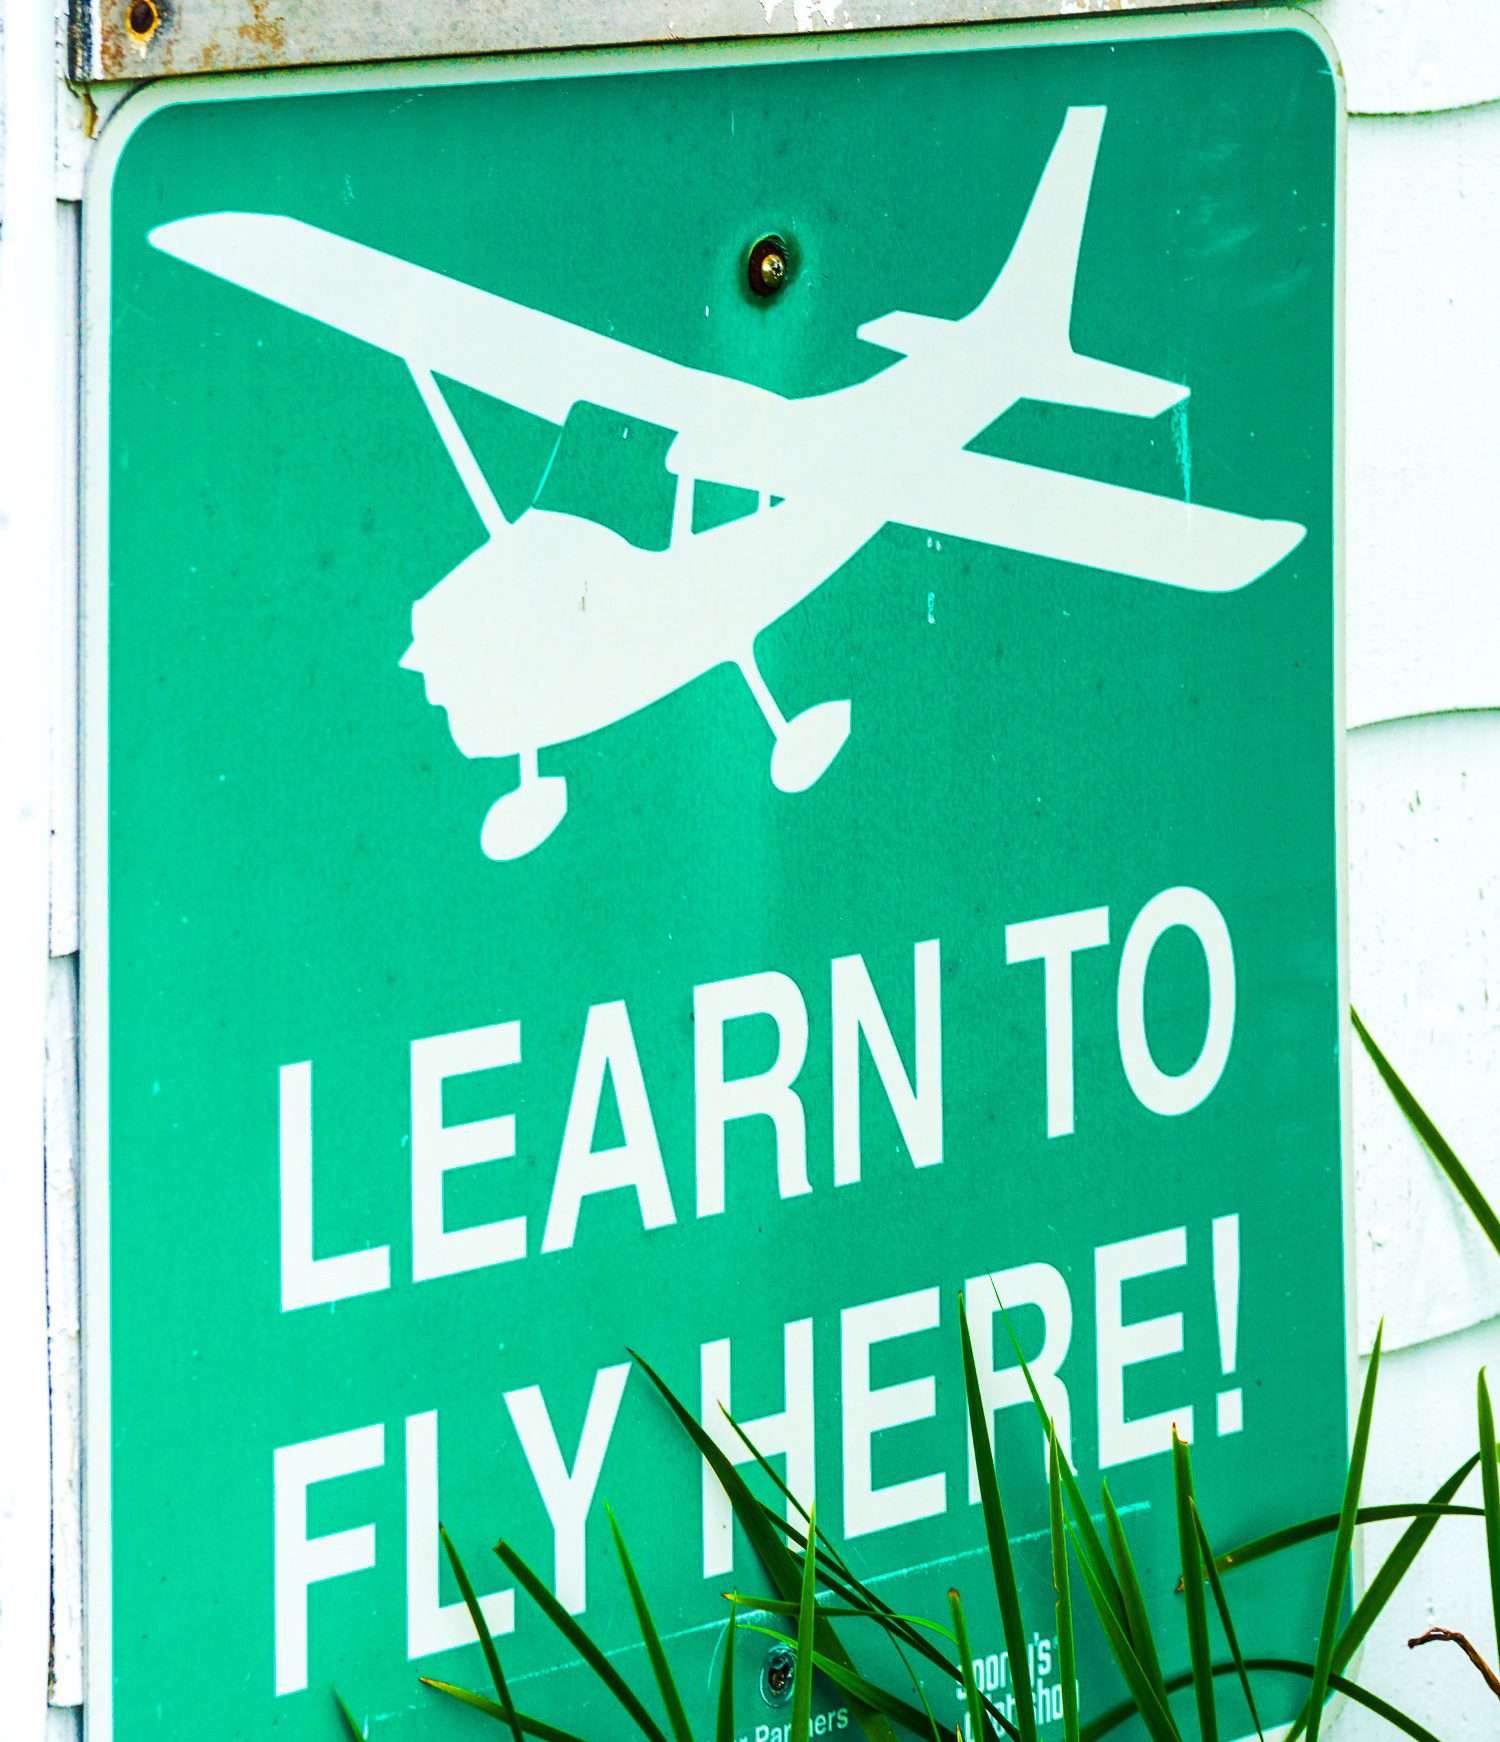 Learn to fly sign from Great Barrington Airport